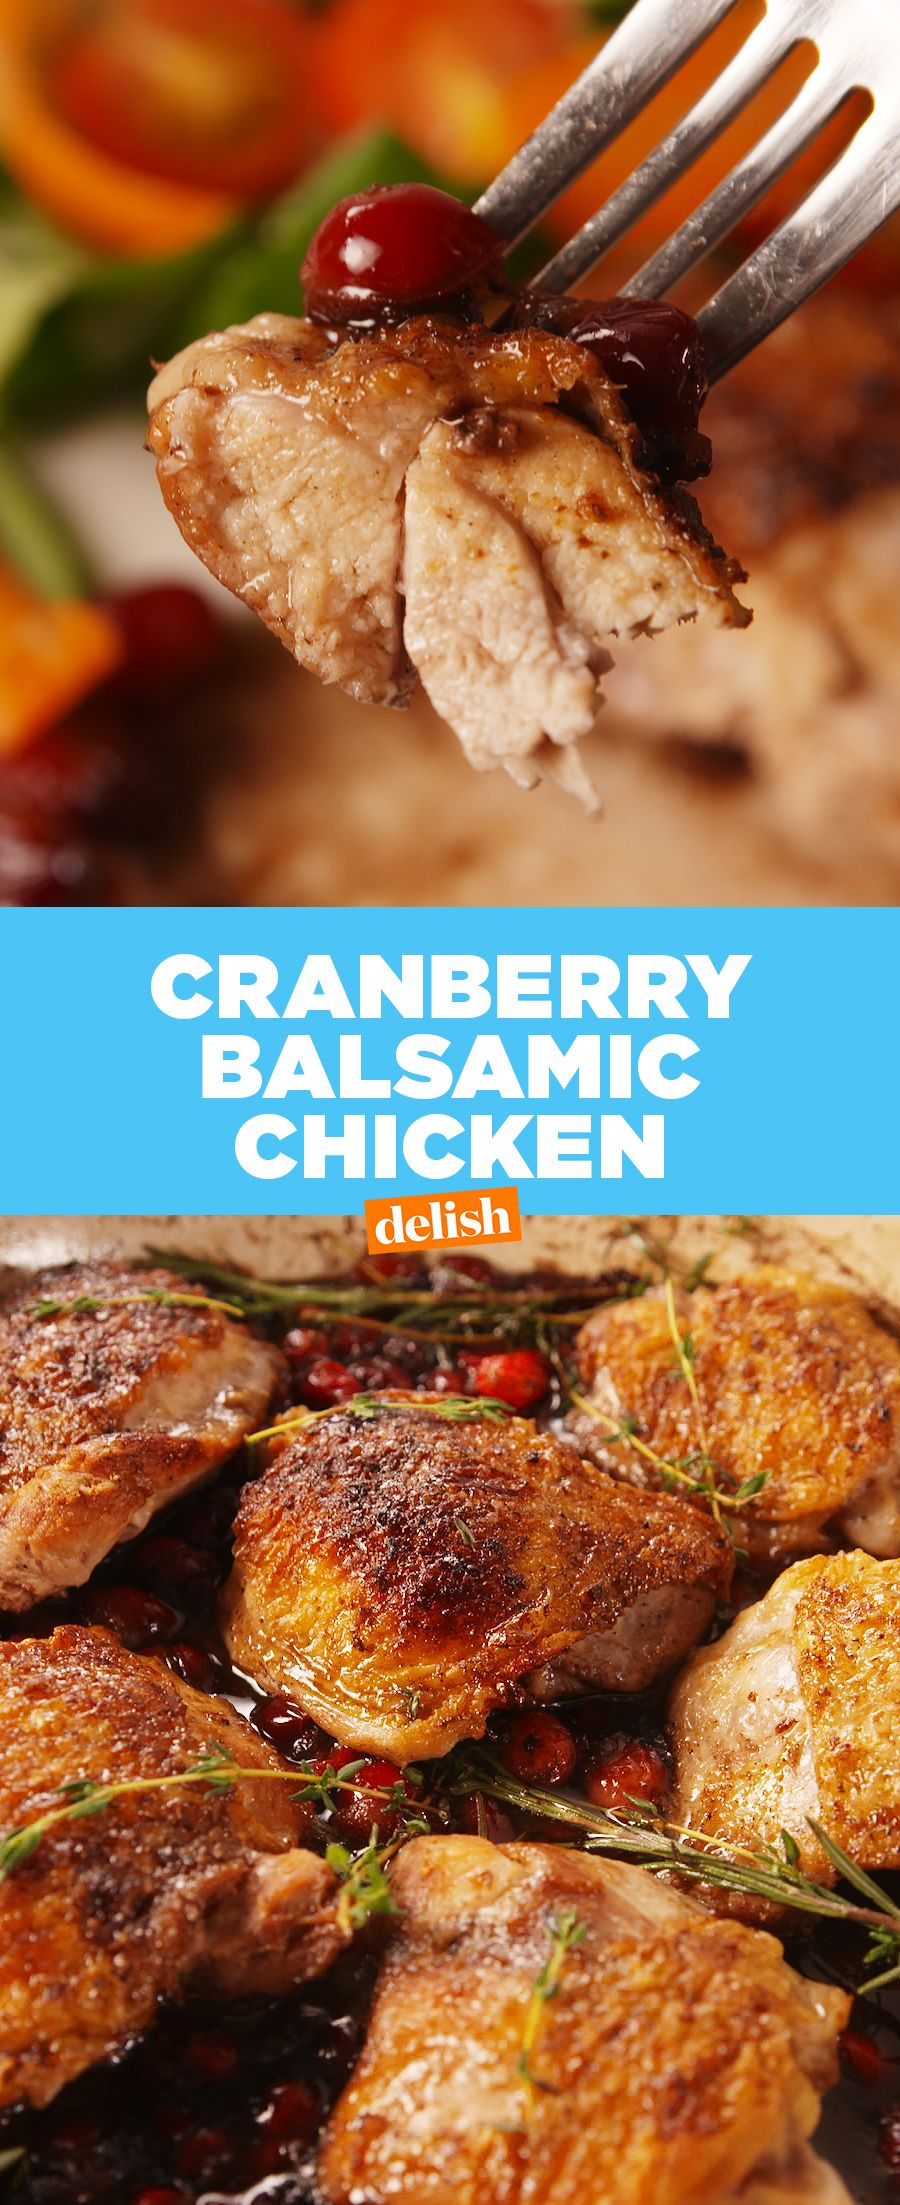 This Is The Chicken Recipe You Ll Be Making All Season Long Get The Recipe At Delish C Delish Chicken Recipes Balsamic Chicken Recipes Rosemary Chicken Recipe